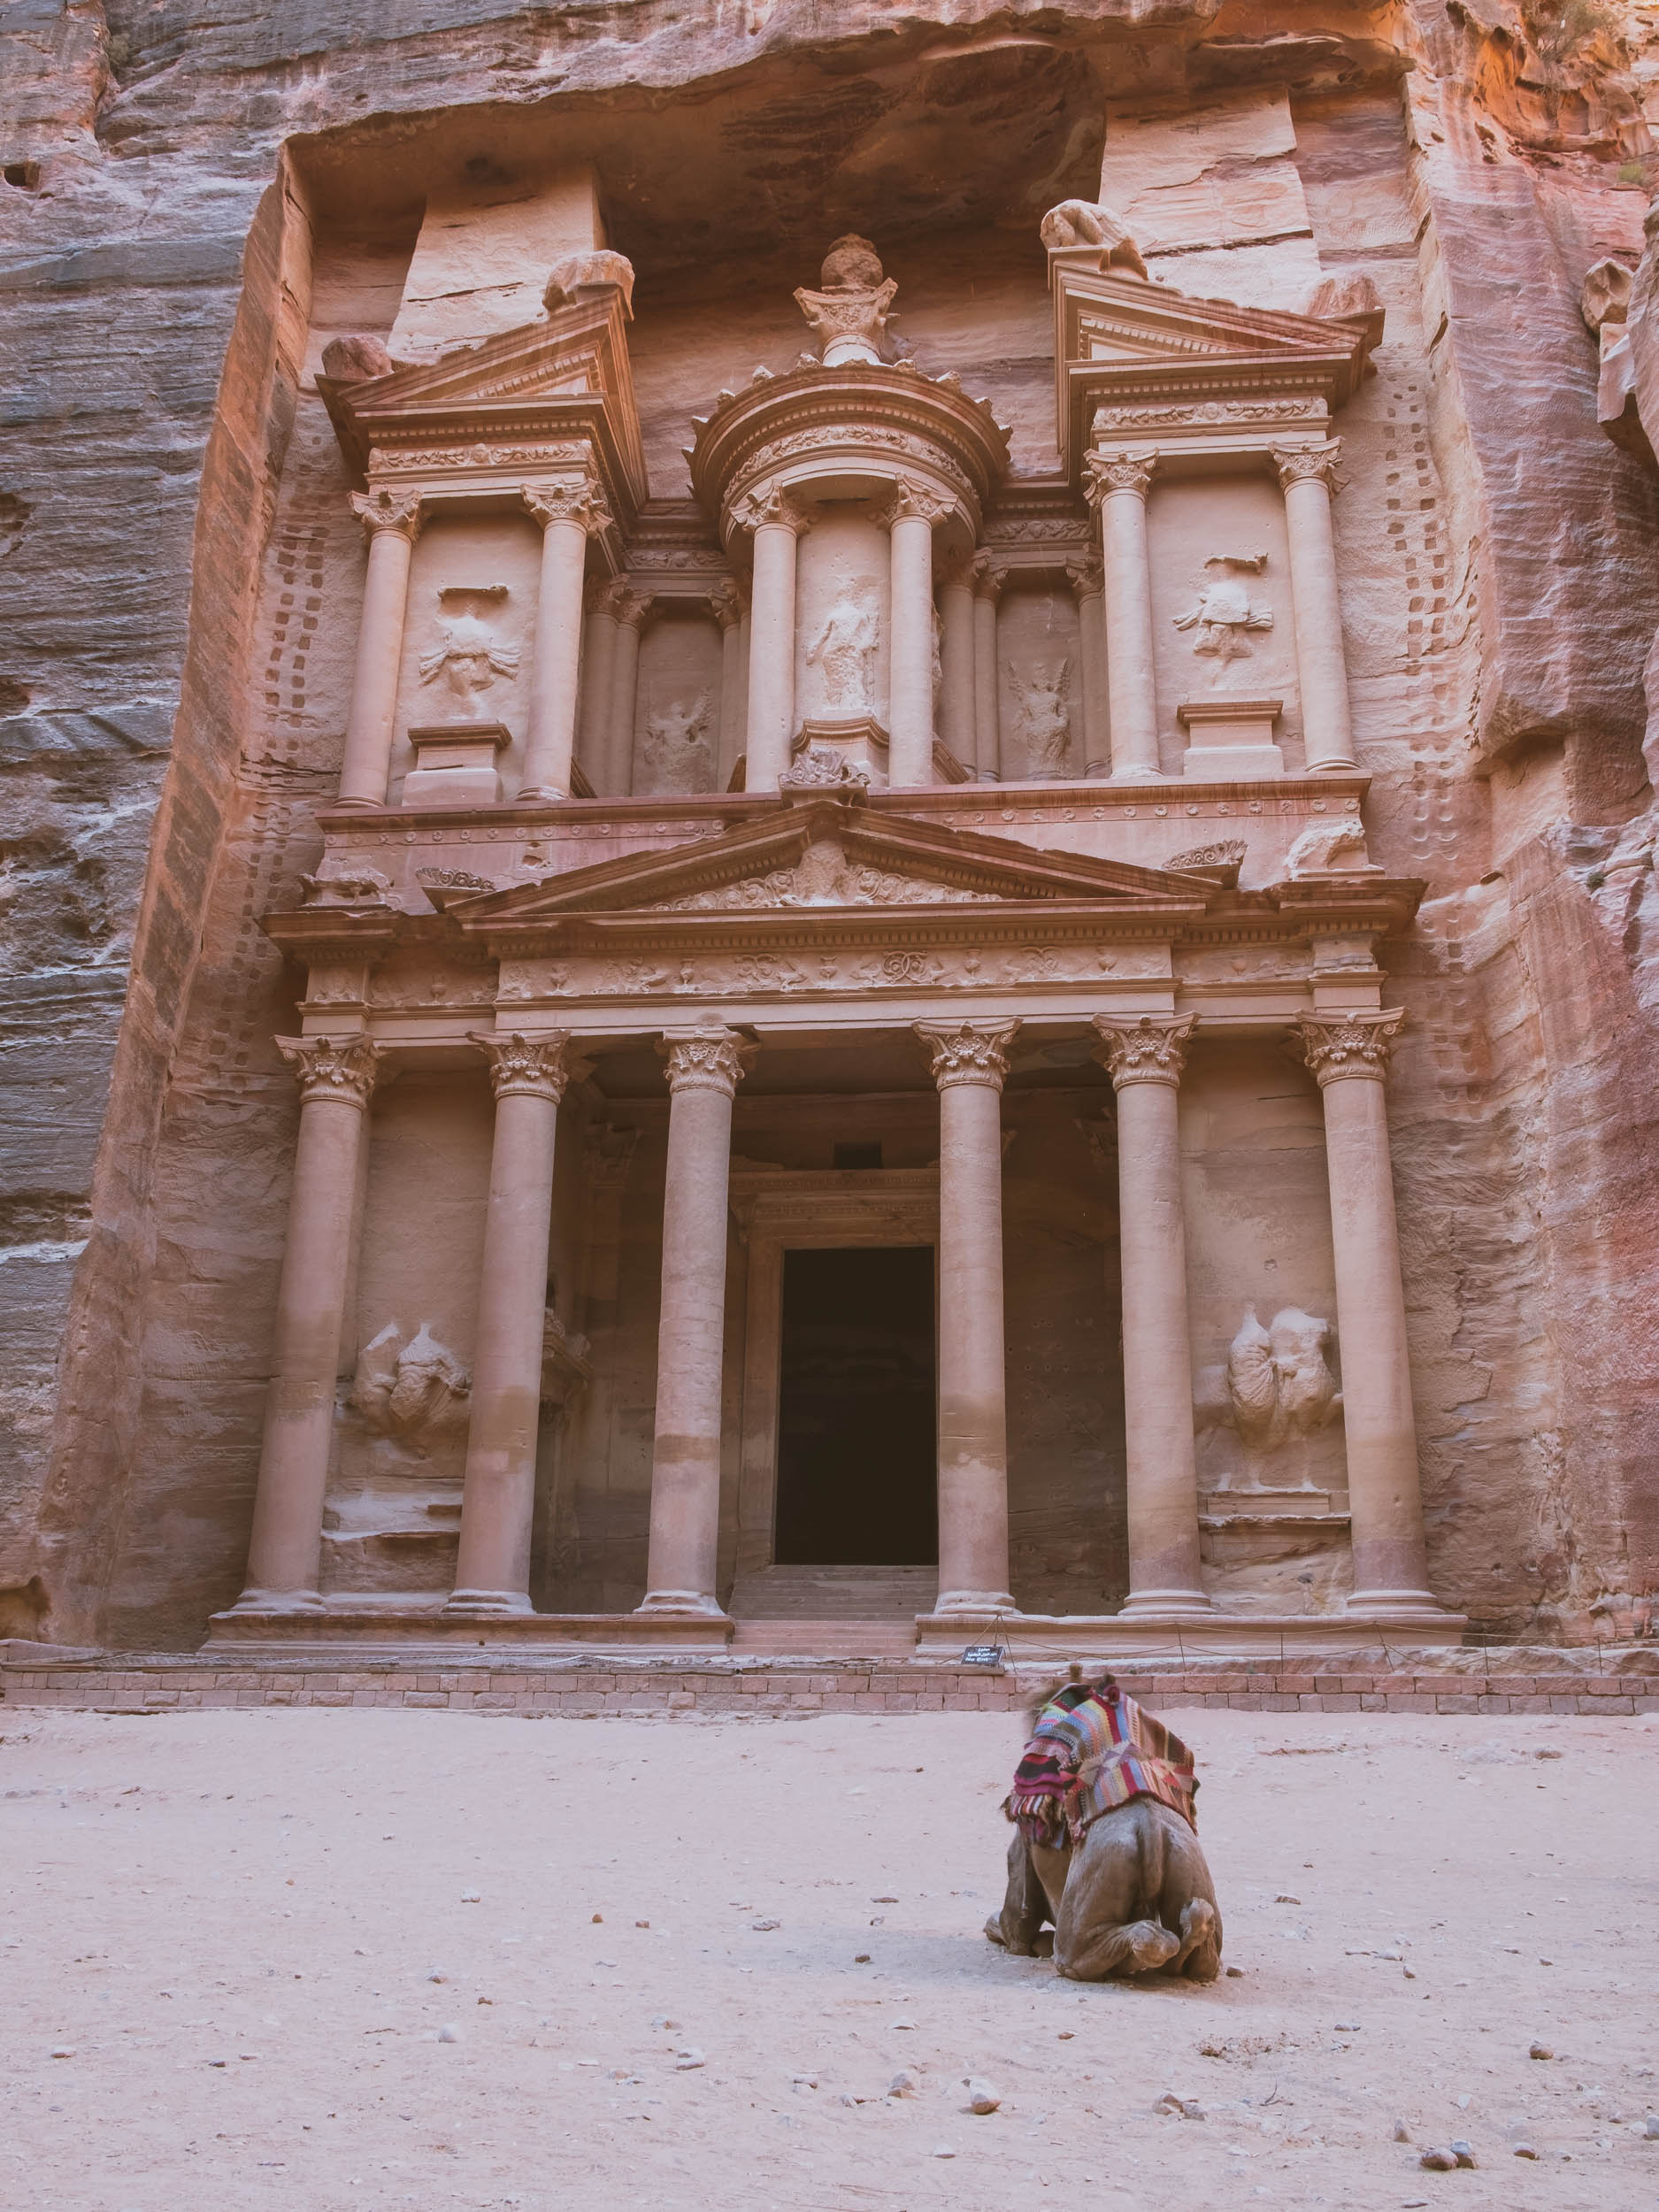 10 day road trip in Jordan, visiting places such as Jerash, Dead Sea, Red Sea, Wadi Rum desert, Petra, King's higtway, Madaba and Amman.